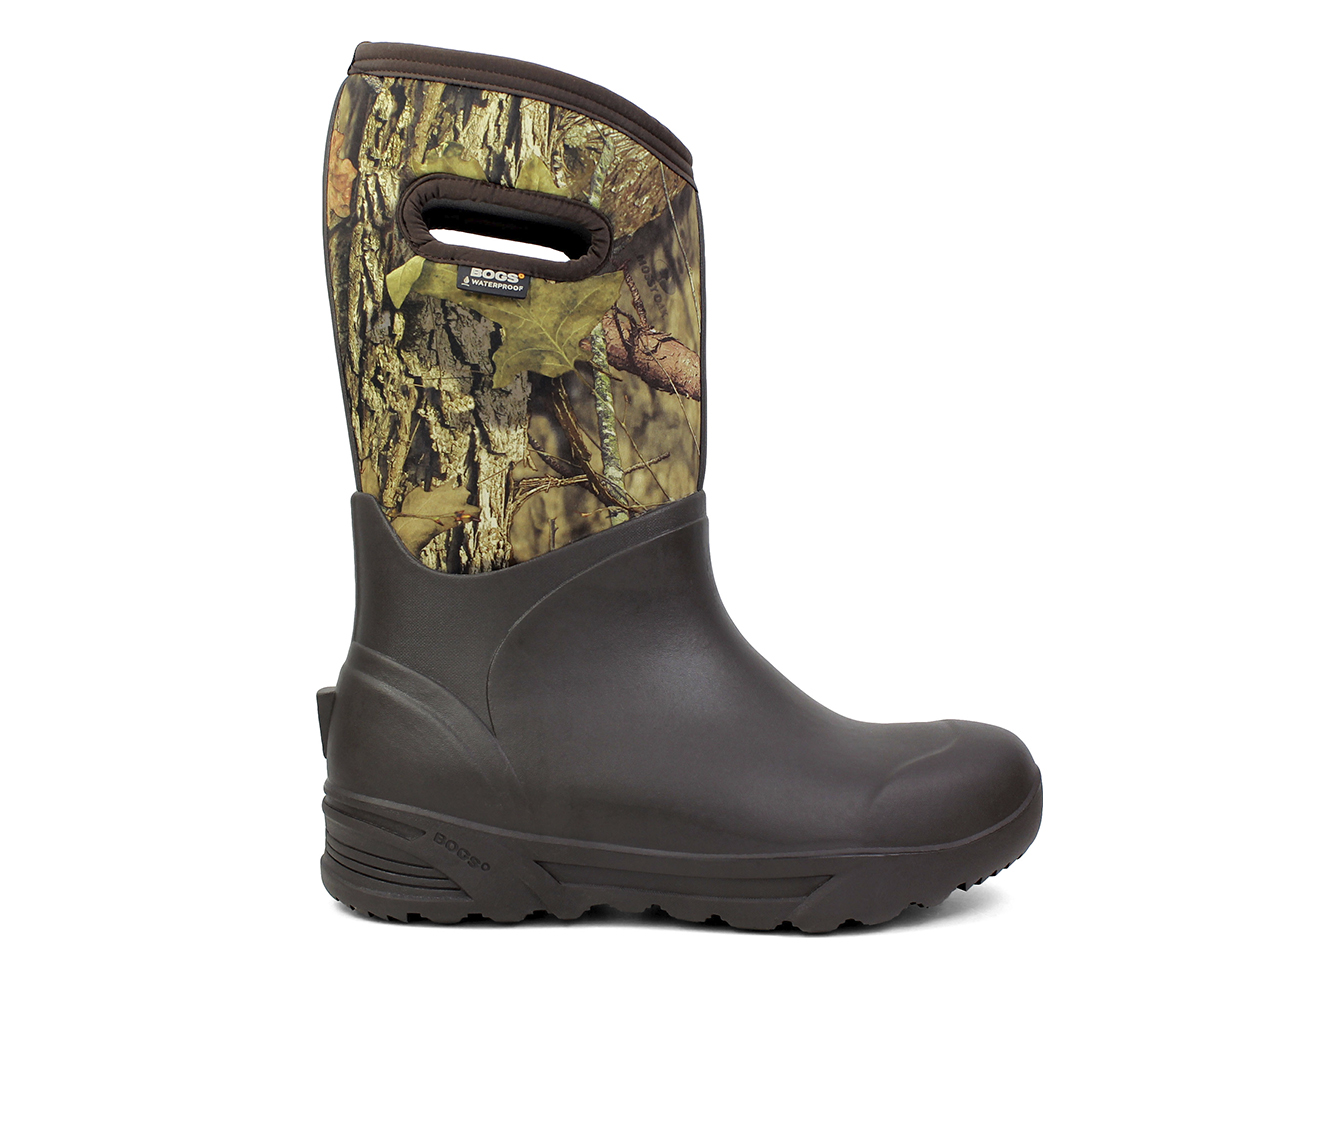 Bogs Footwear Mitchell Men's Boots (Multi-color Fabric)